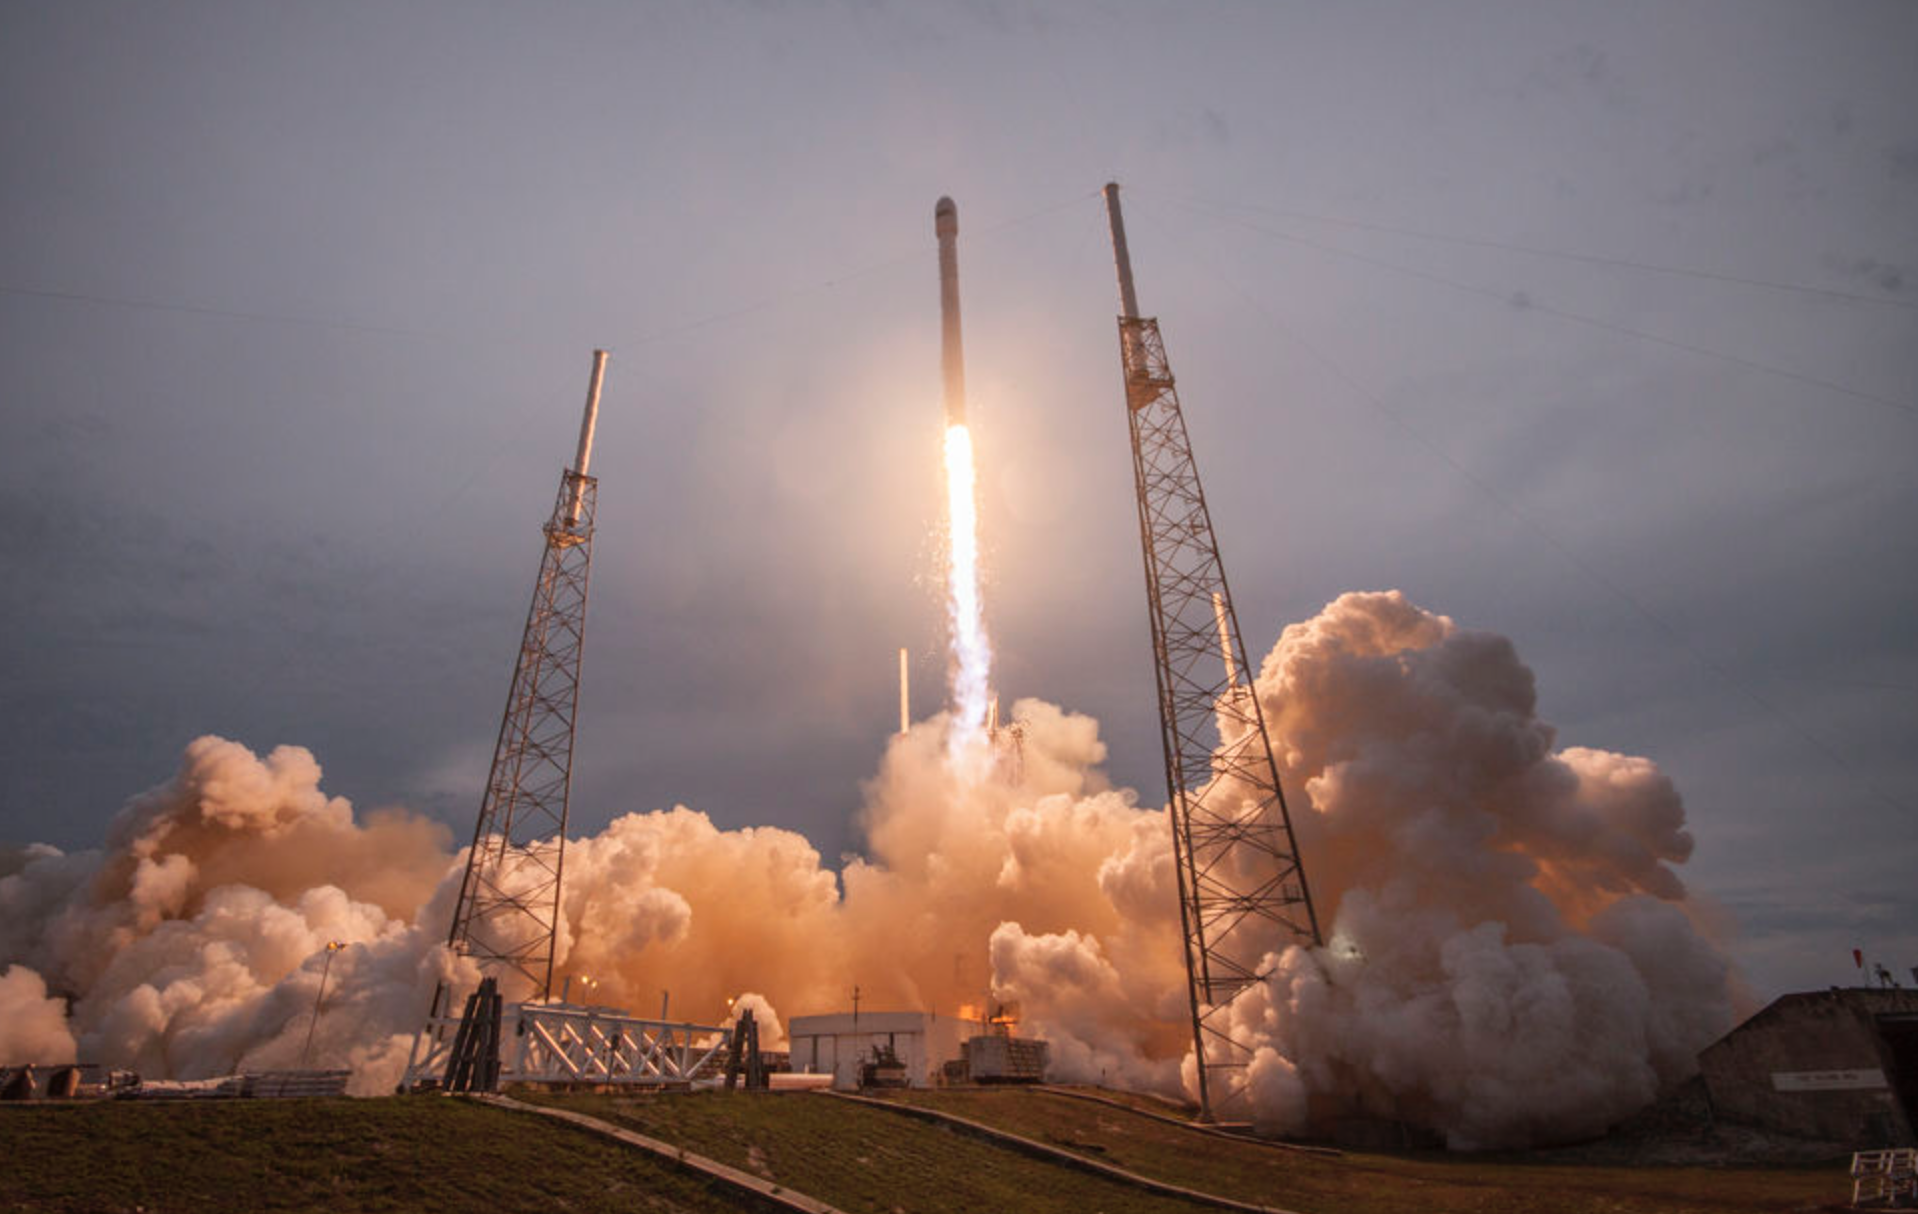 spacex may be launching next - HD1280×853